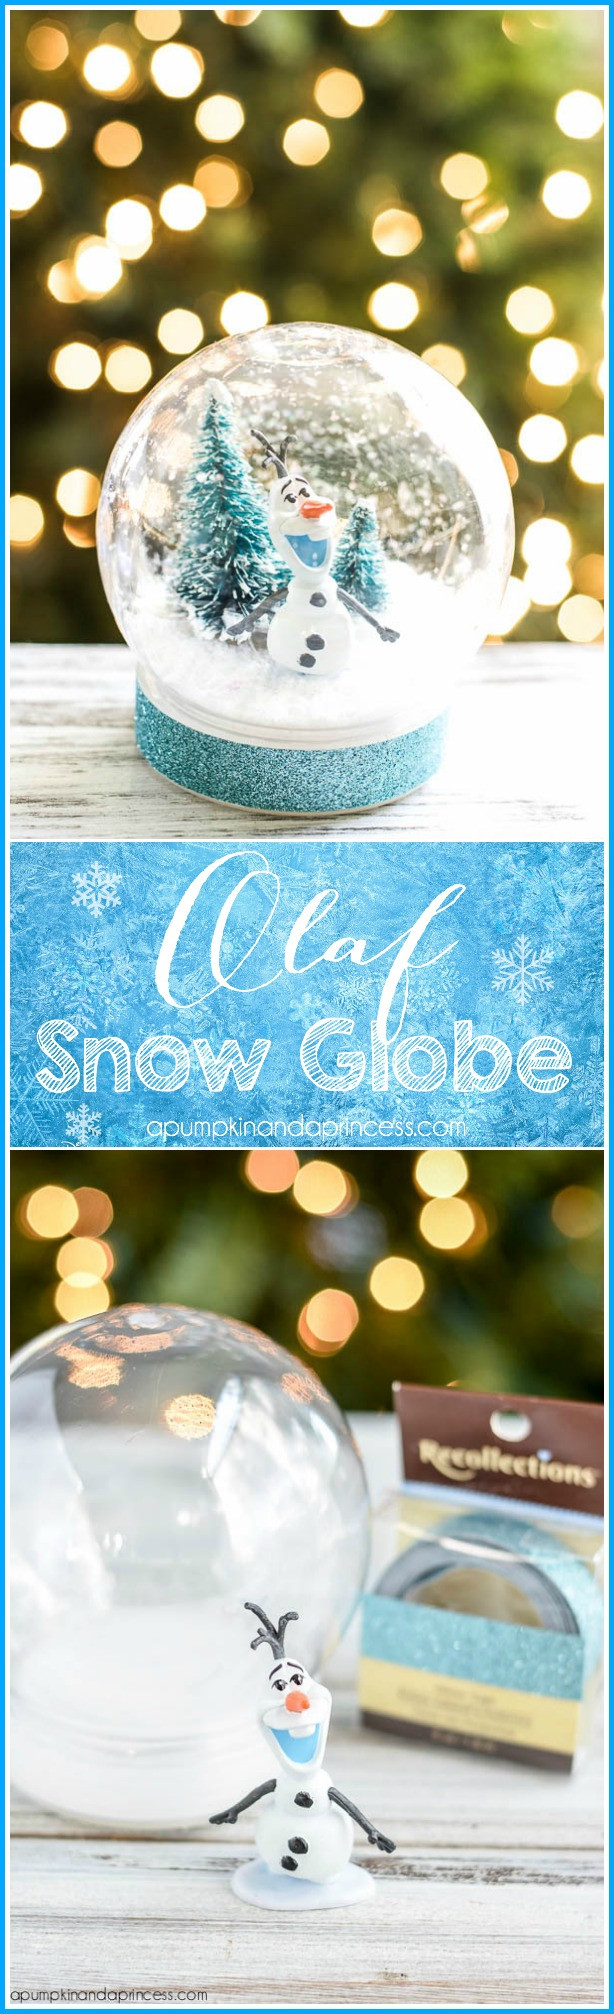 Best ideas about DIY Snow Globes . Save or Pin 10 Awesome DIY Frozen Christmas Decorations Now.